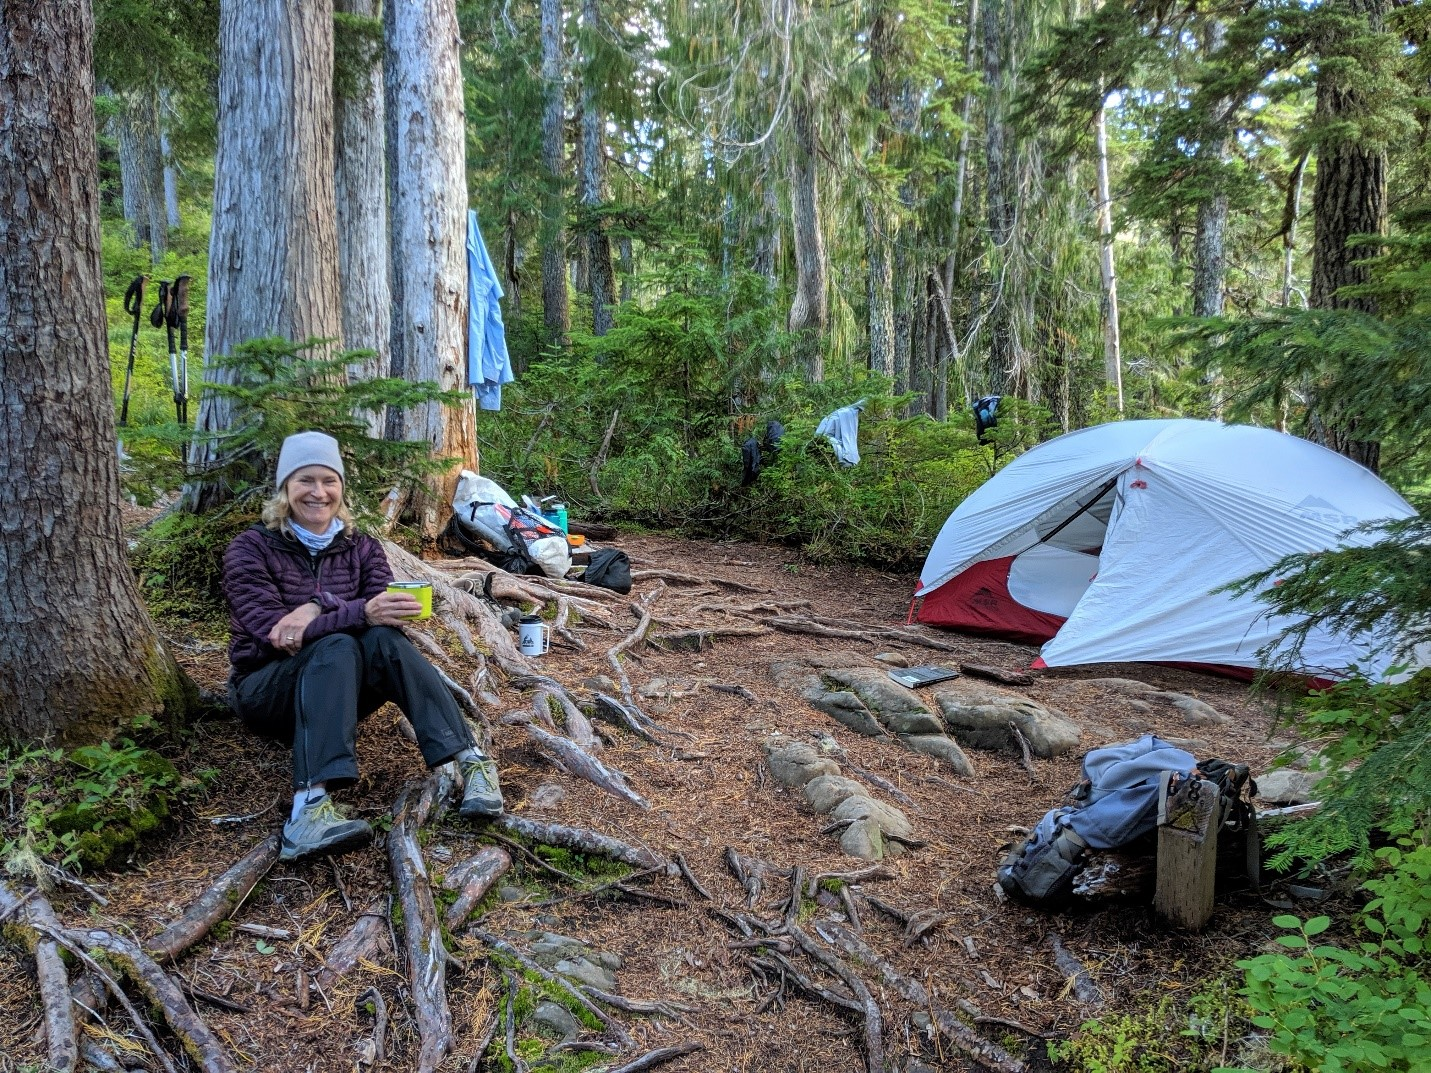 Trisha leaning up against a tree at camp with a tent and pack in the background.